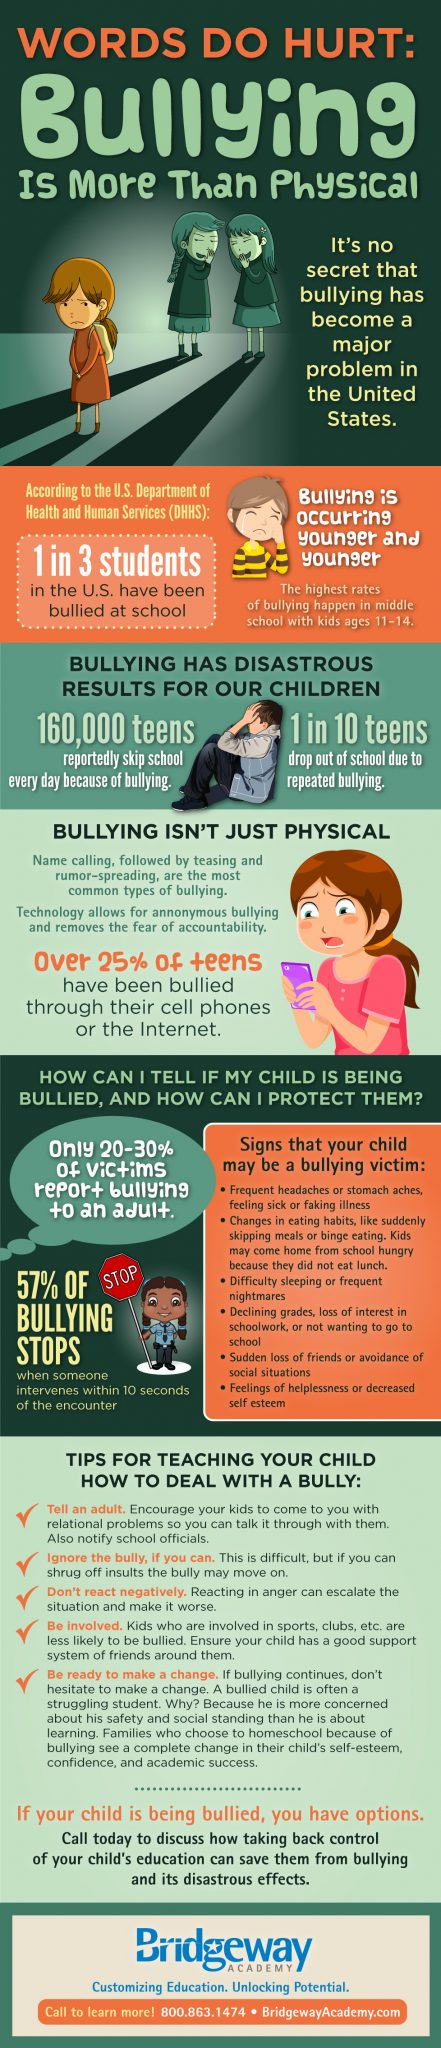 bullying, Bullying is more than physical